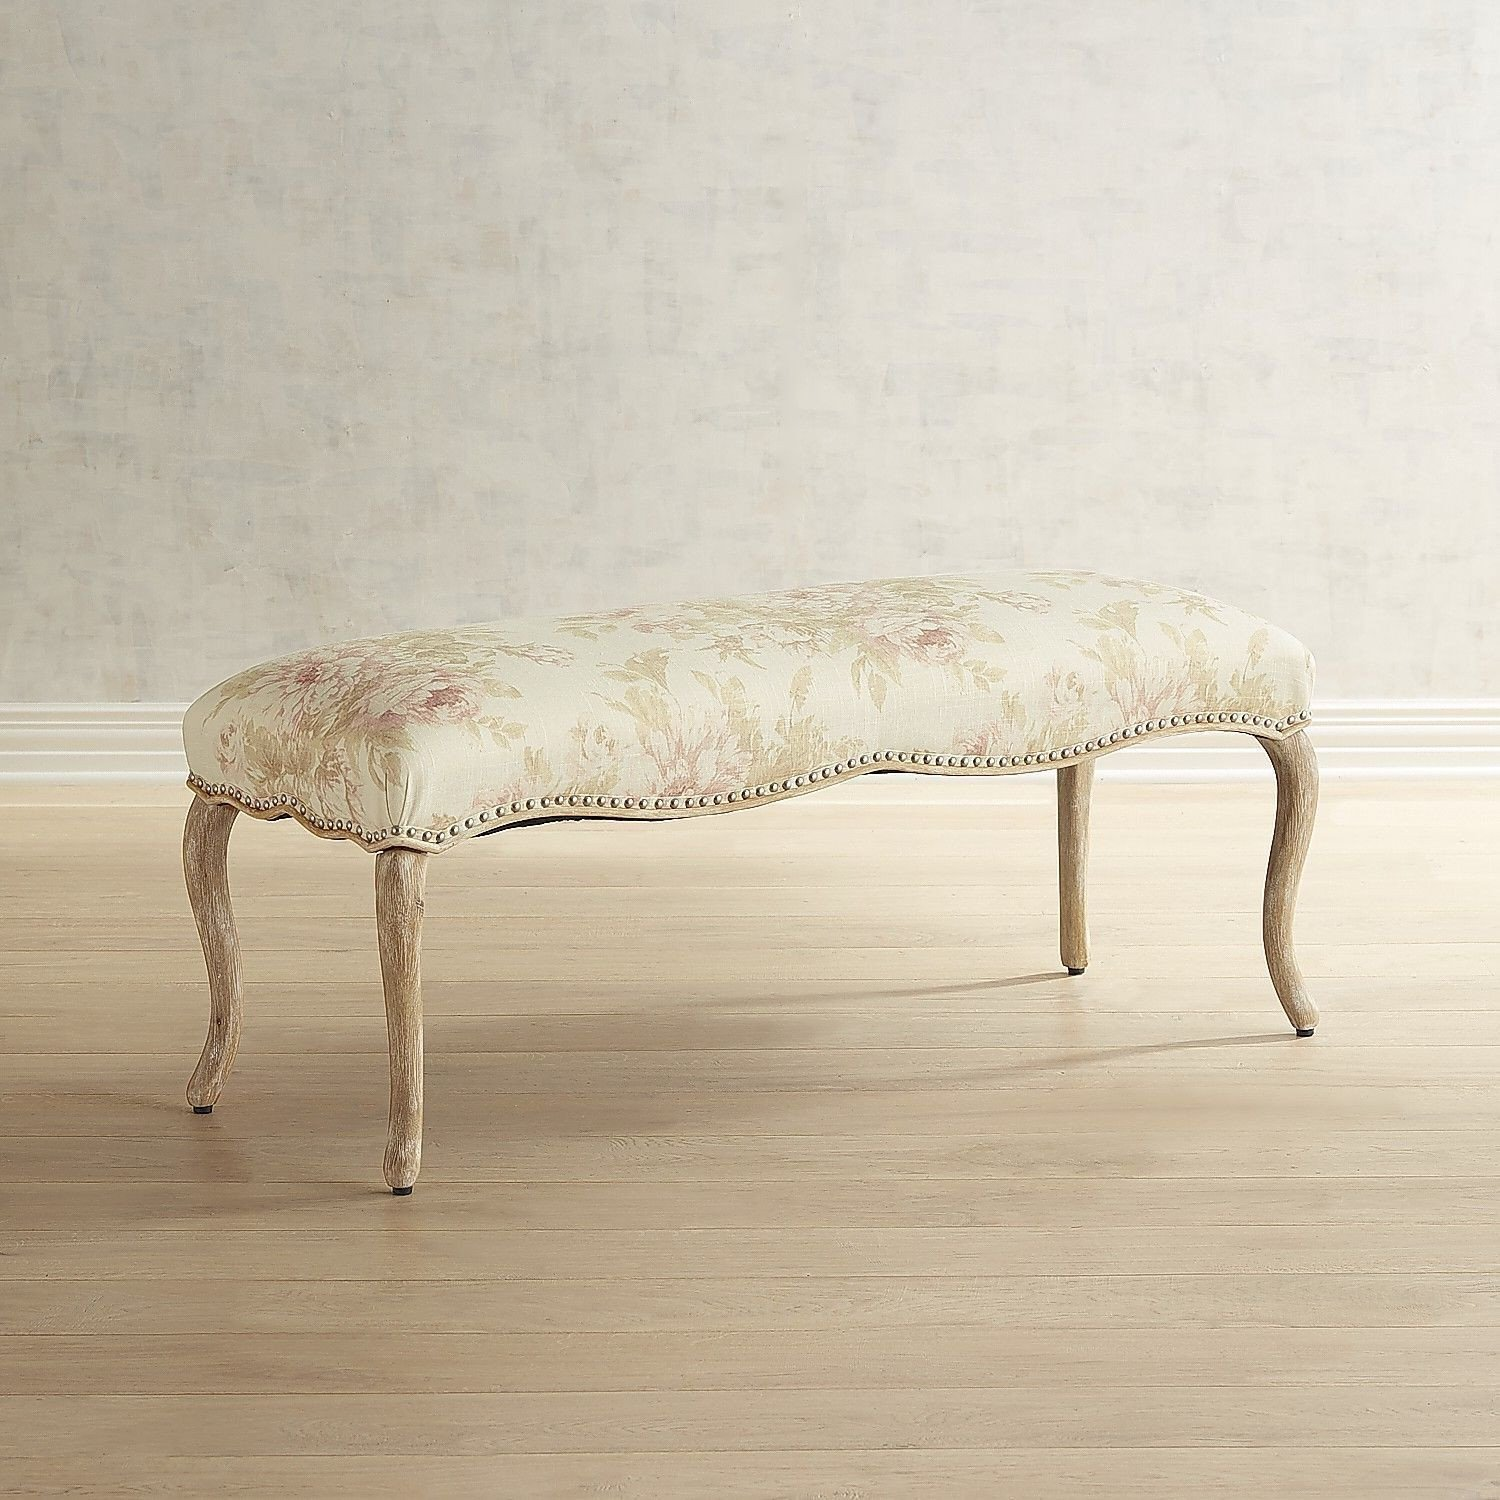 Fabric Bench for Bedroom Unique Claudine Jasmine Blush Bench